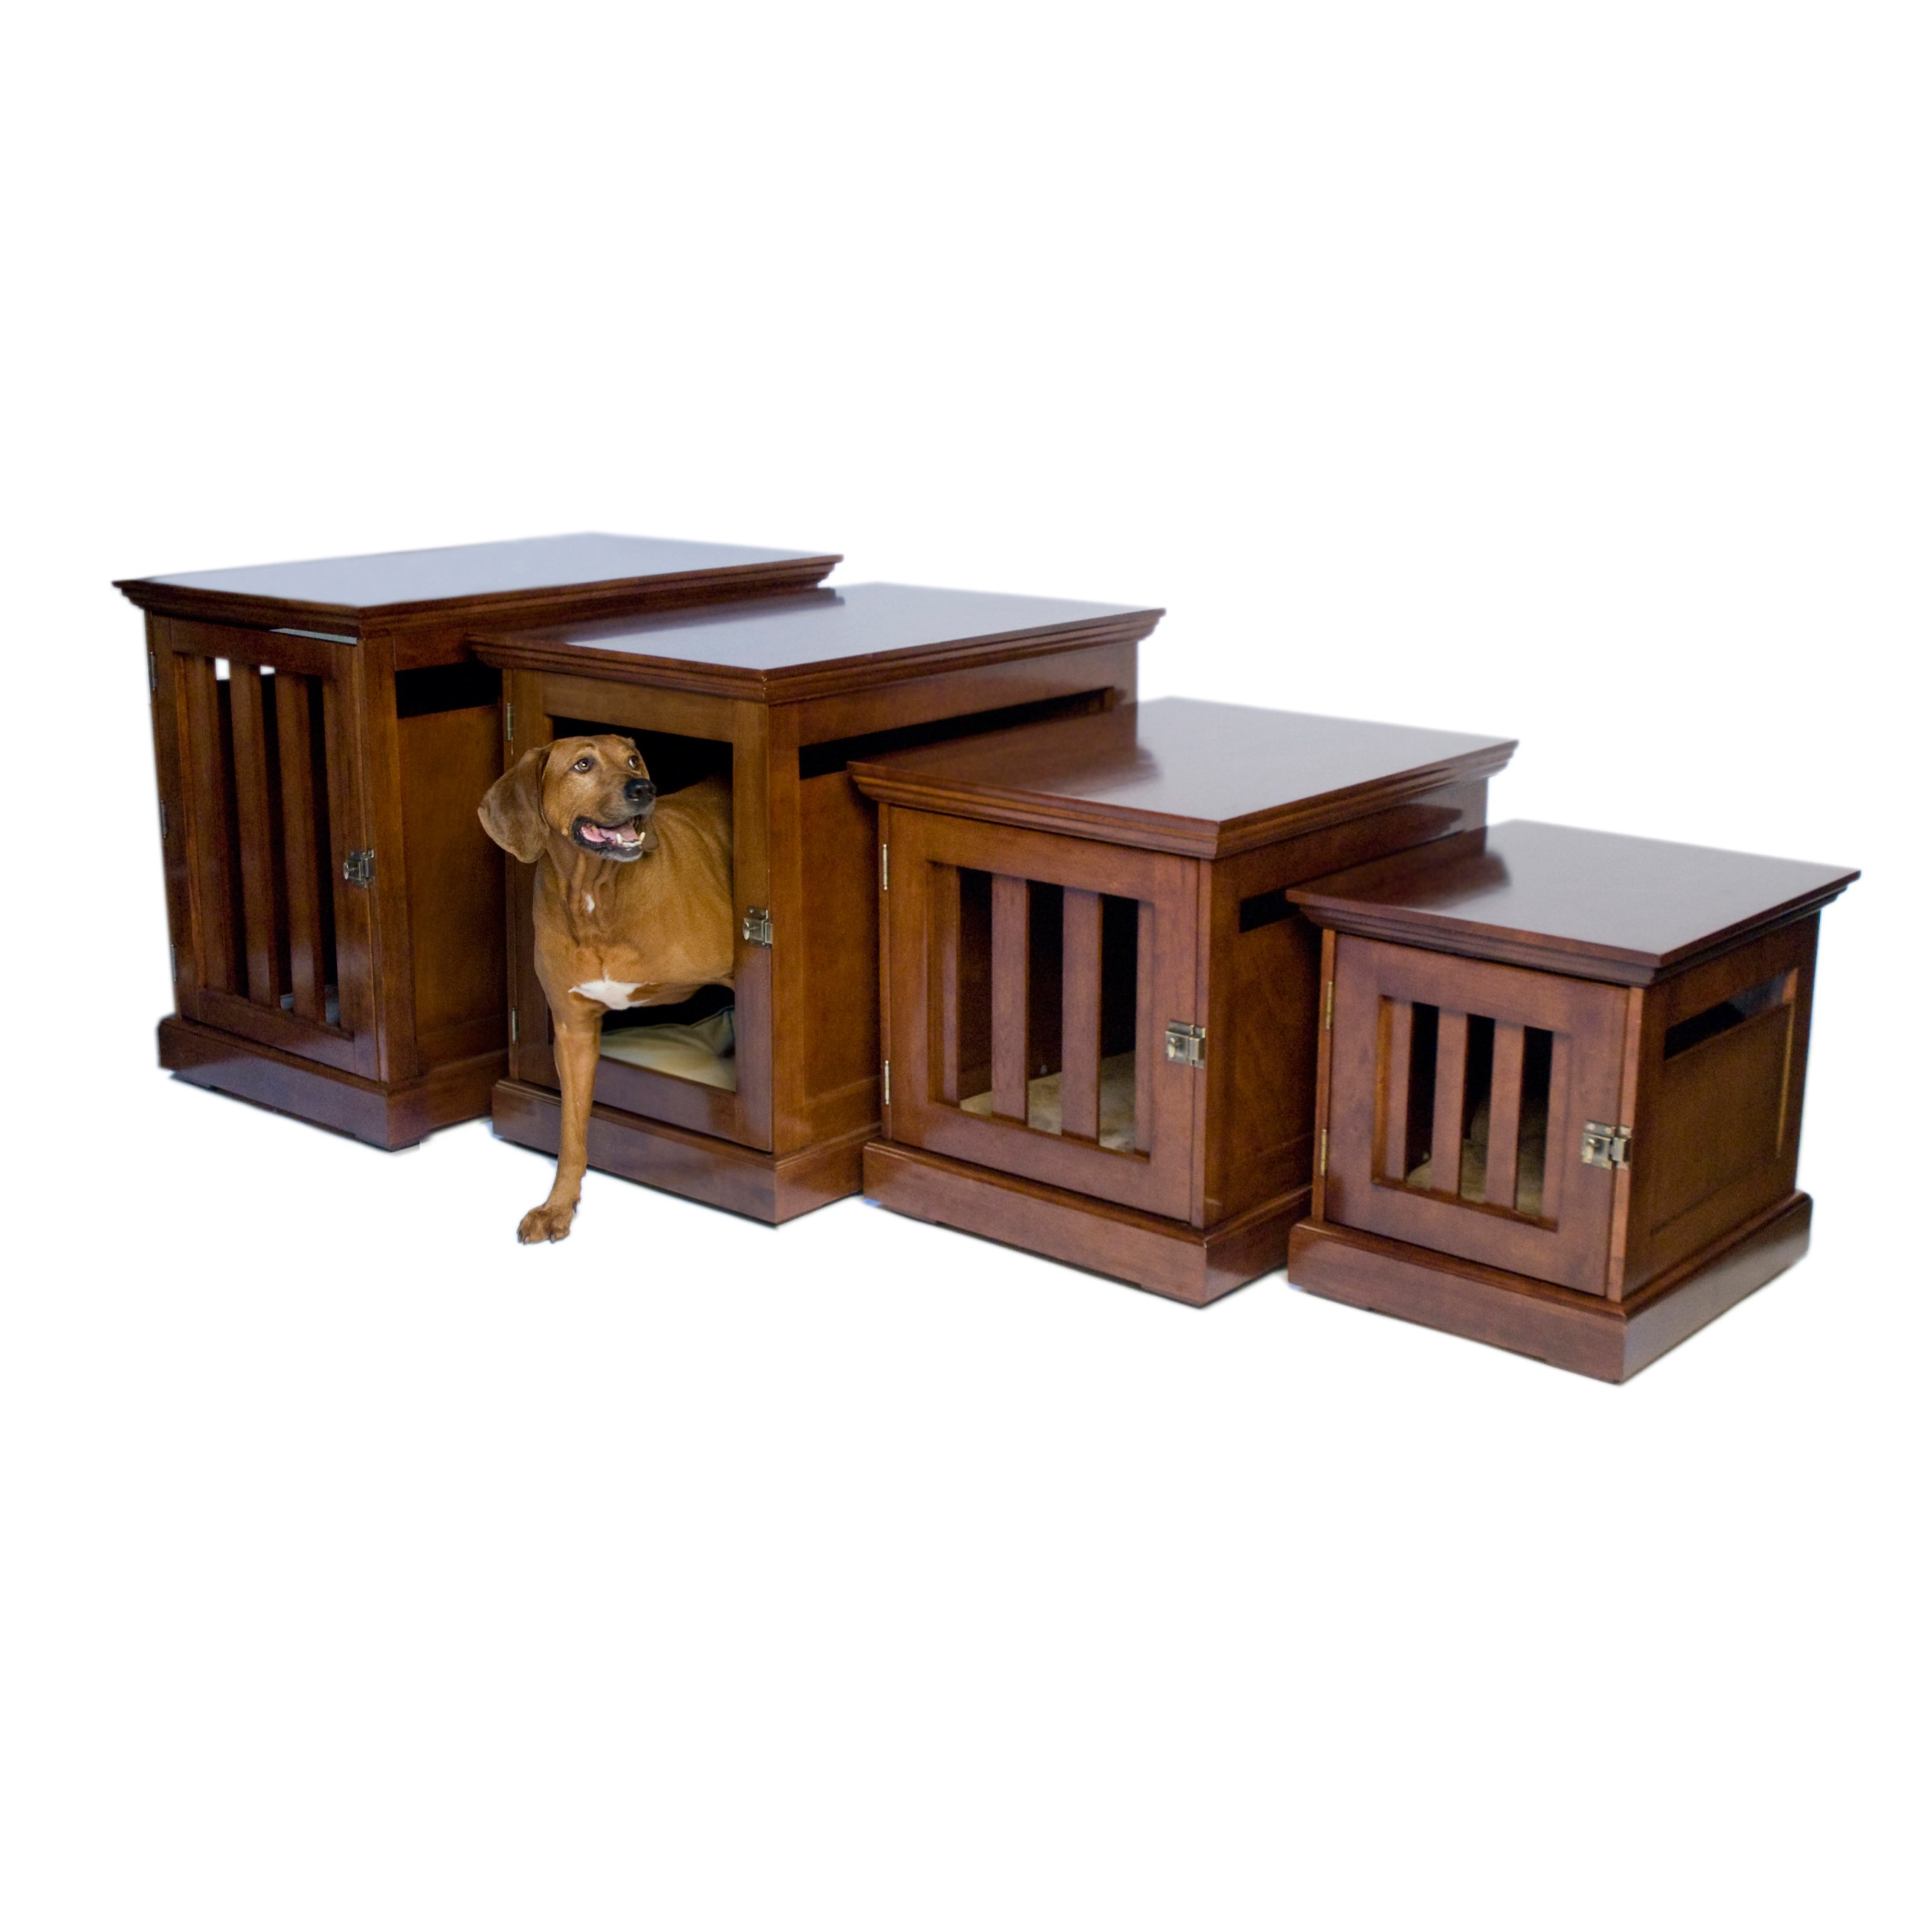 house furniture storage plans bench dog of attachment exchangefo wood and barrel crate wooden fresh